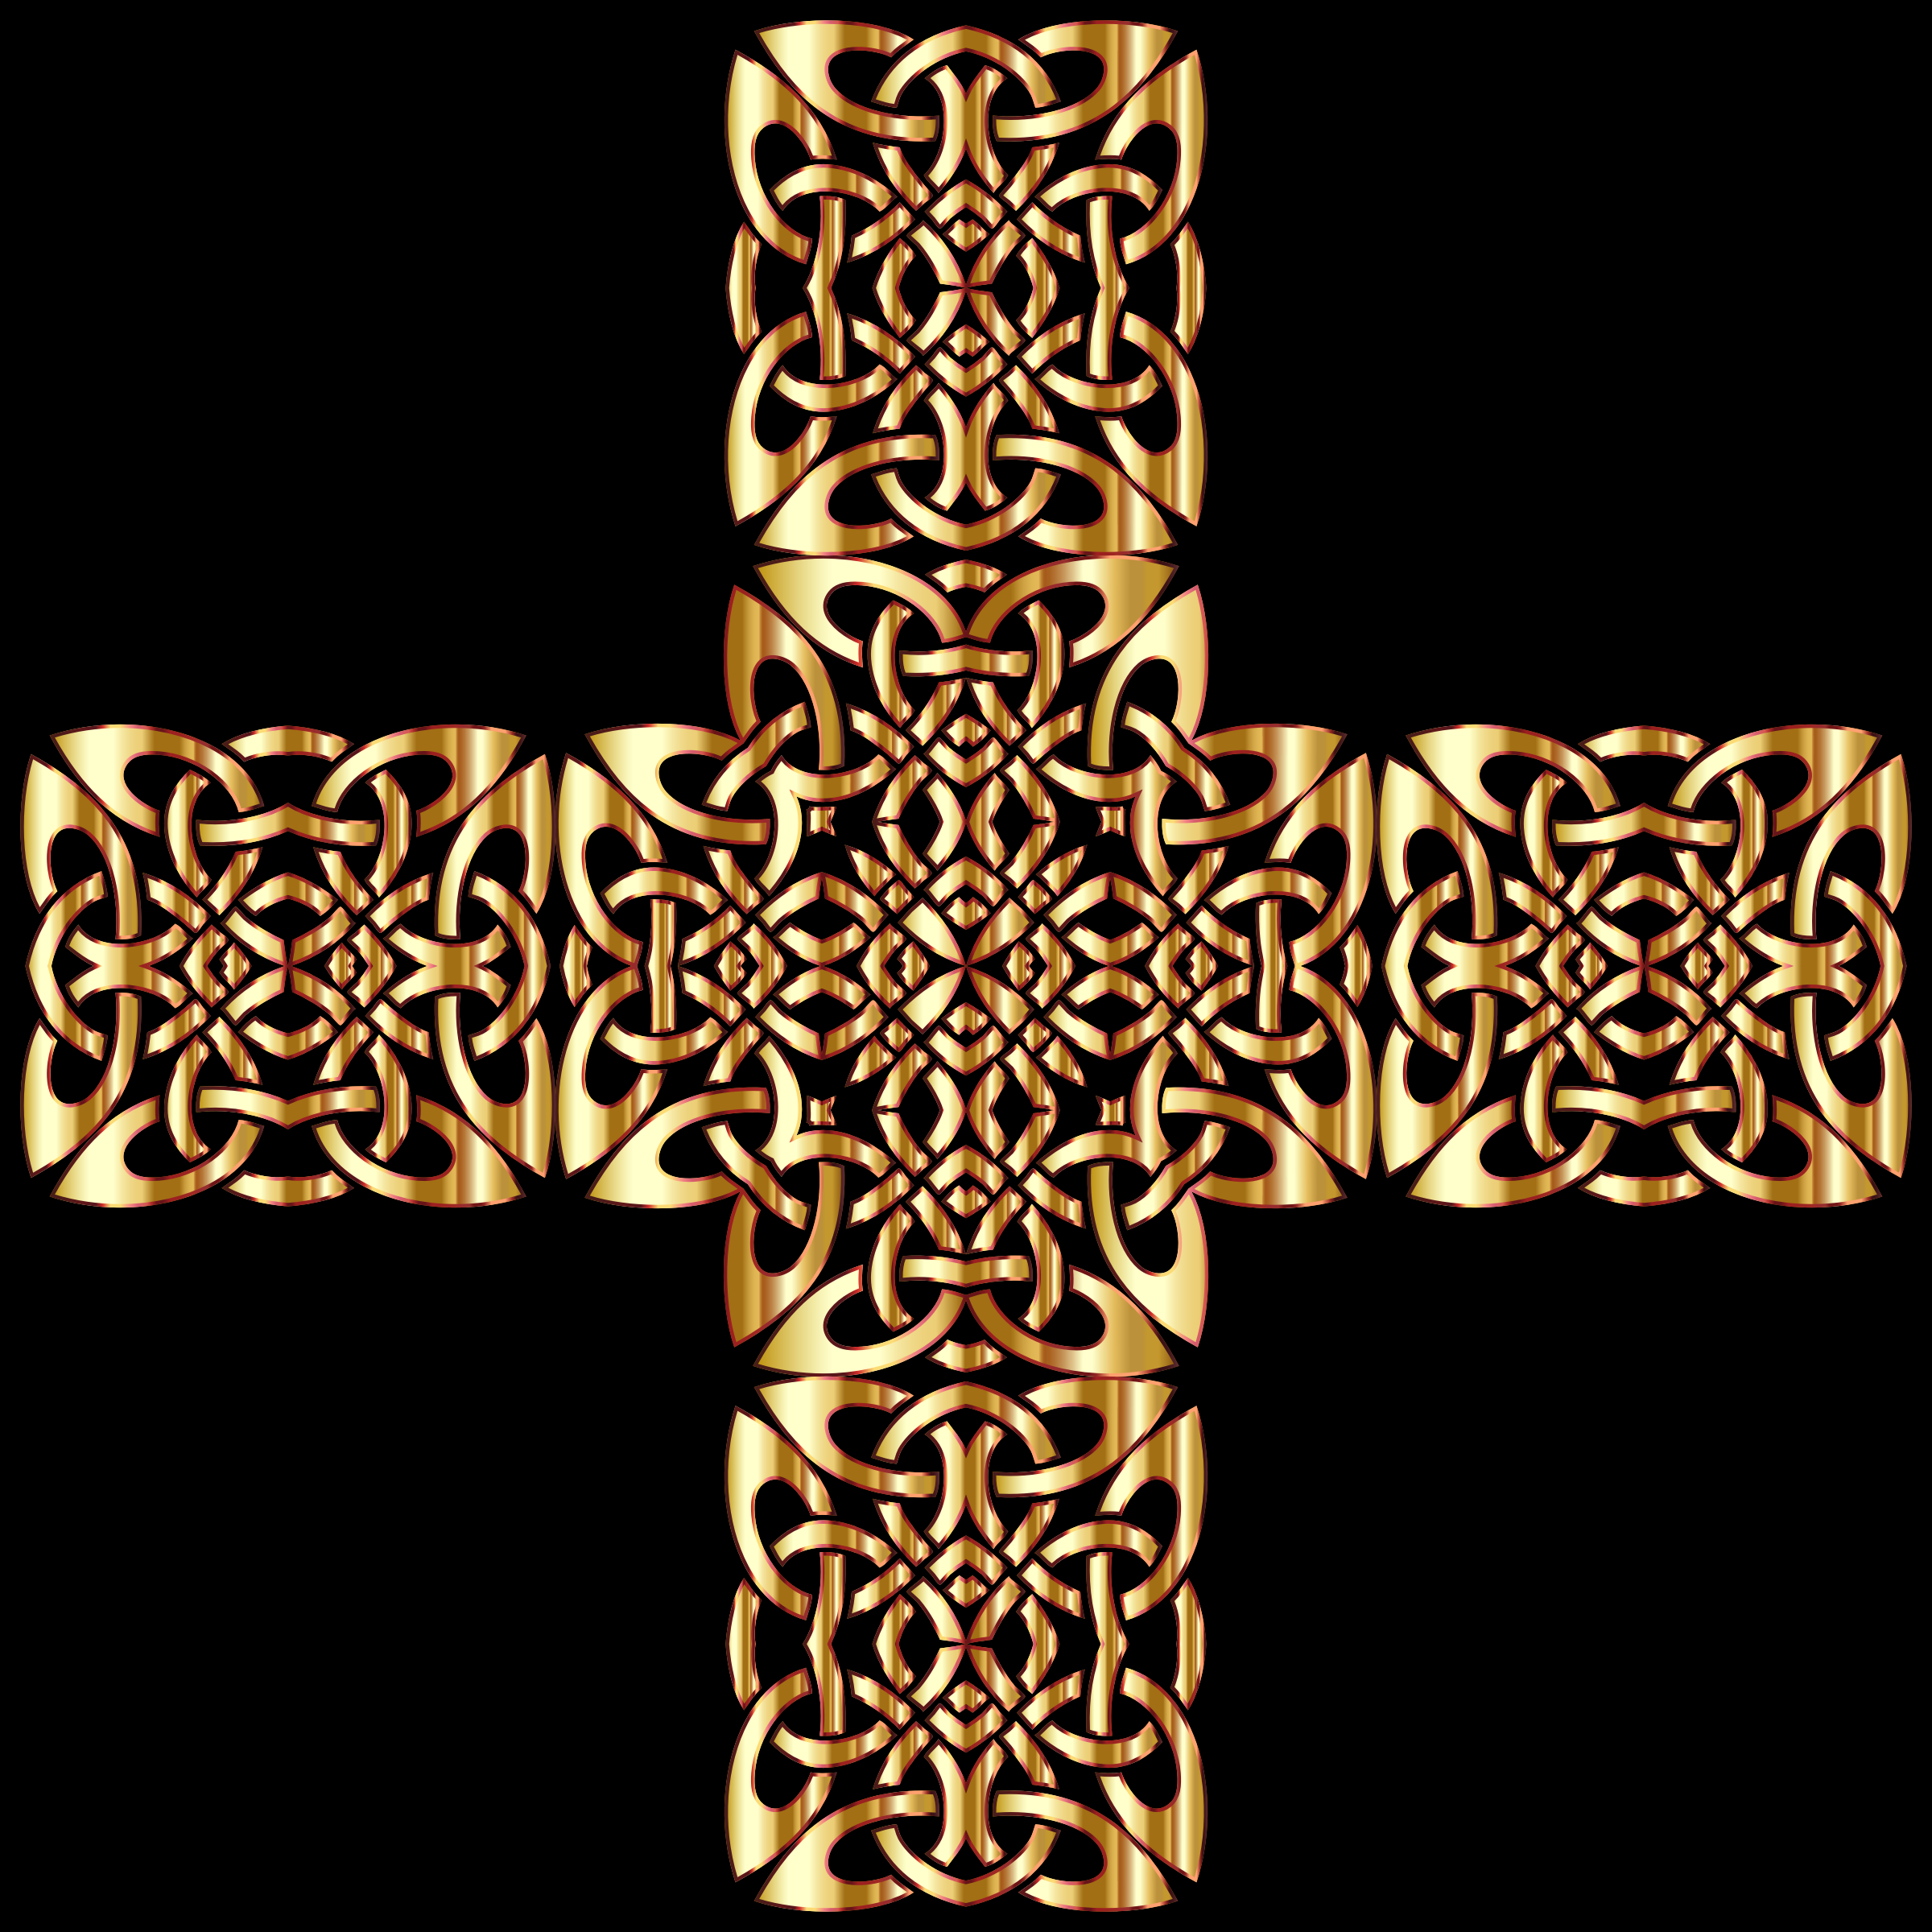 Golden Celtic Knot Cross 3 by GDJ